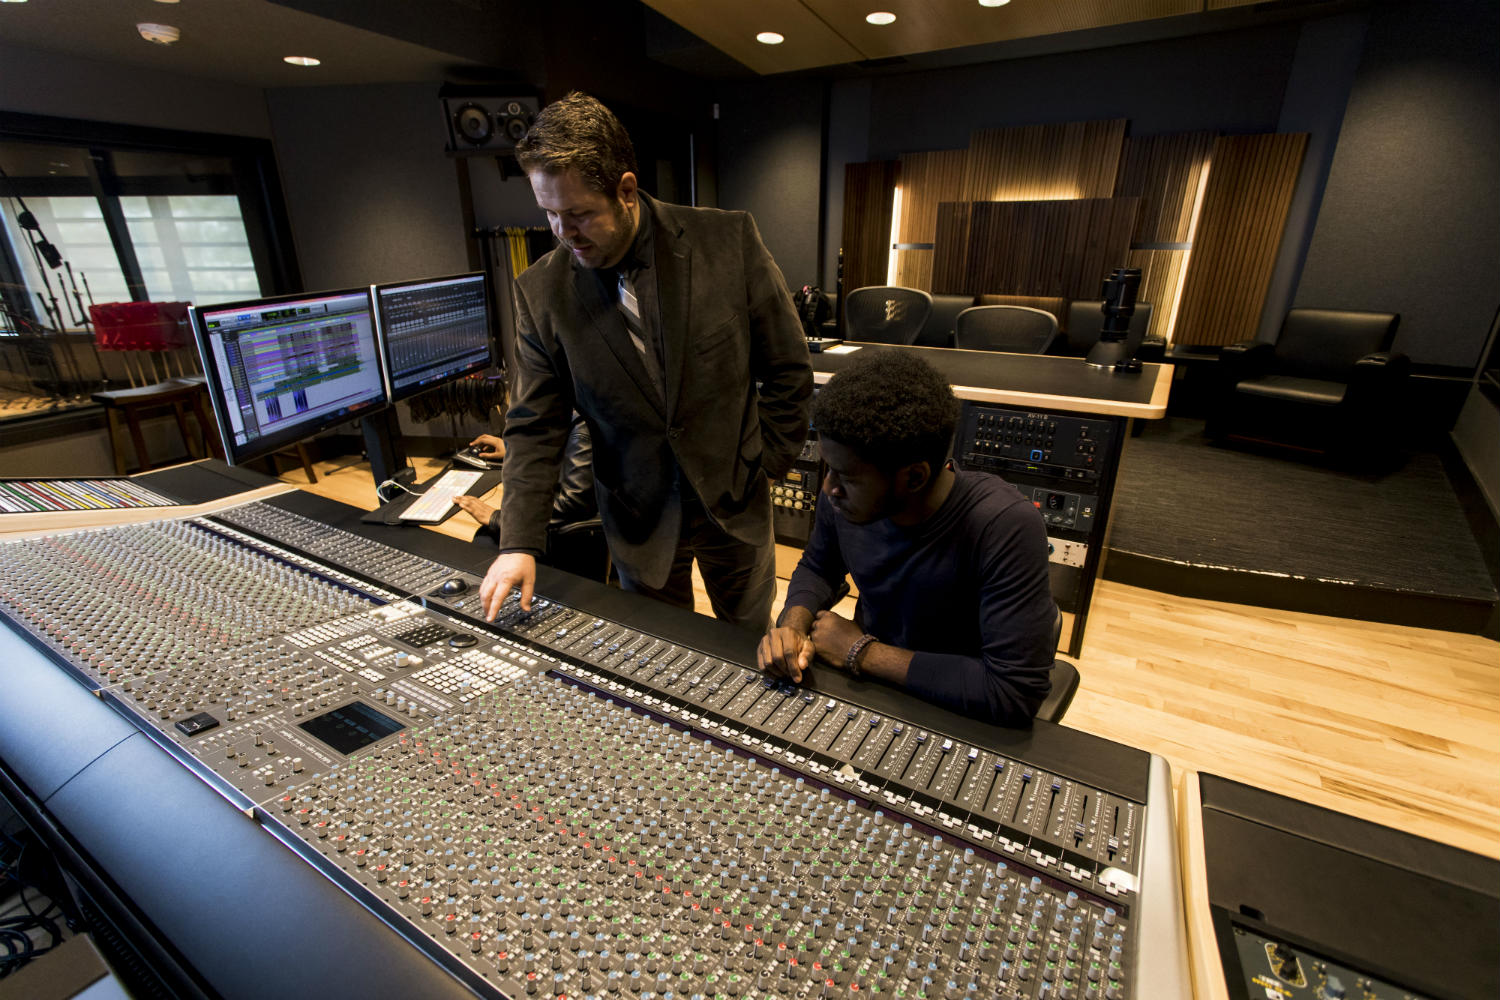 WSDG has designed a state-of-the art recording /teaching studio for the expanding campus of Liberty University, America's largest private, non-profit Christian university. Control Room with Faculty and Student.